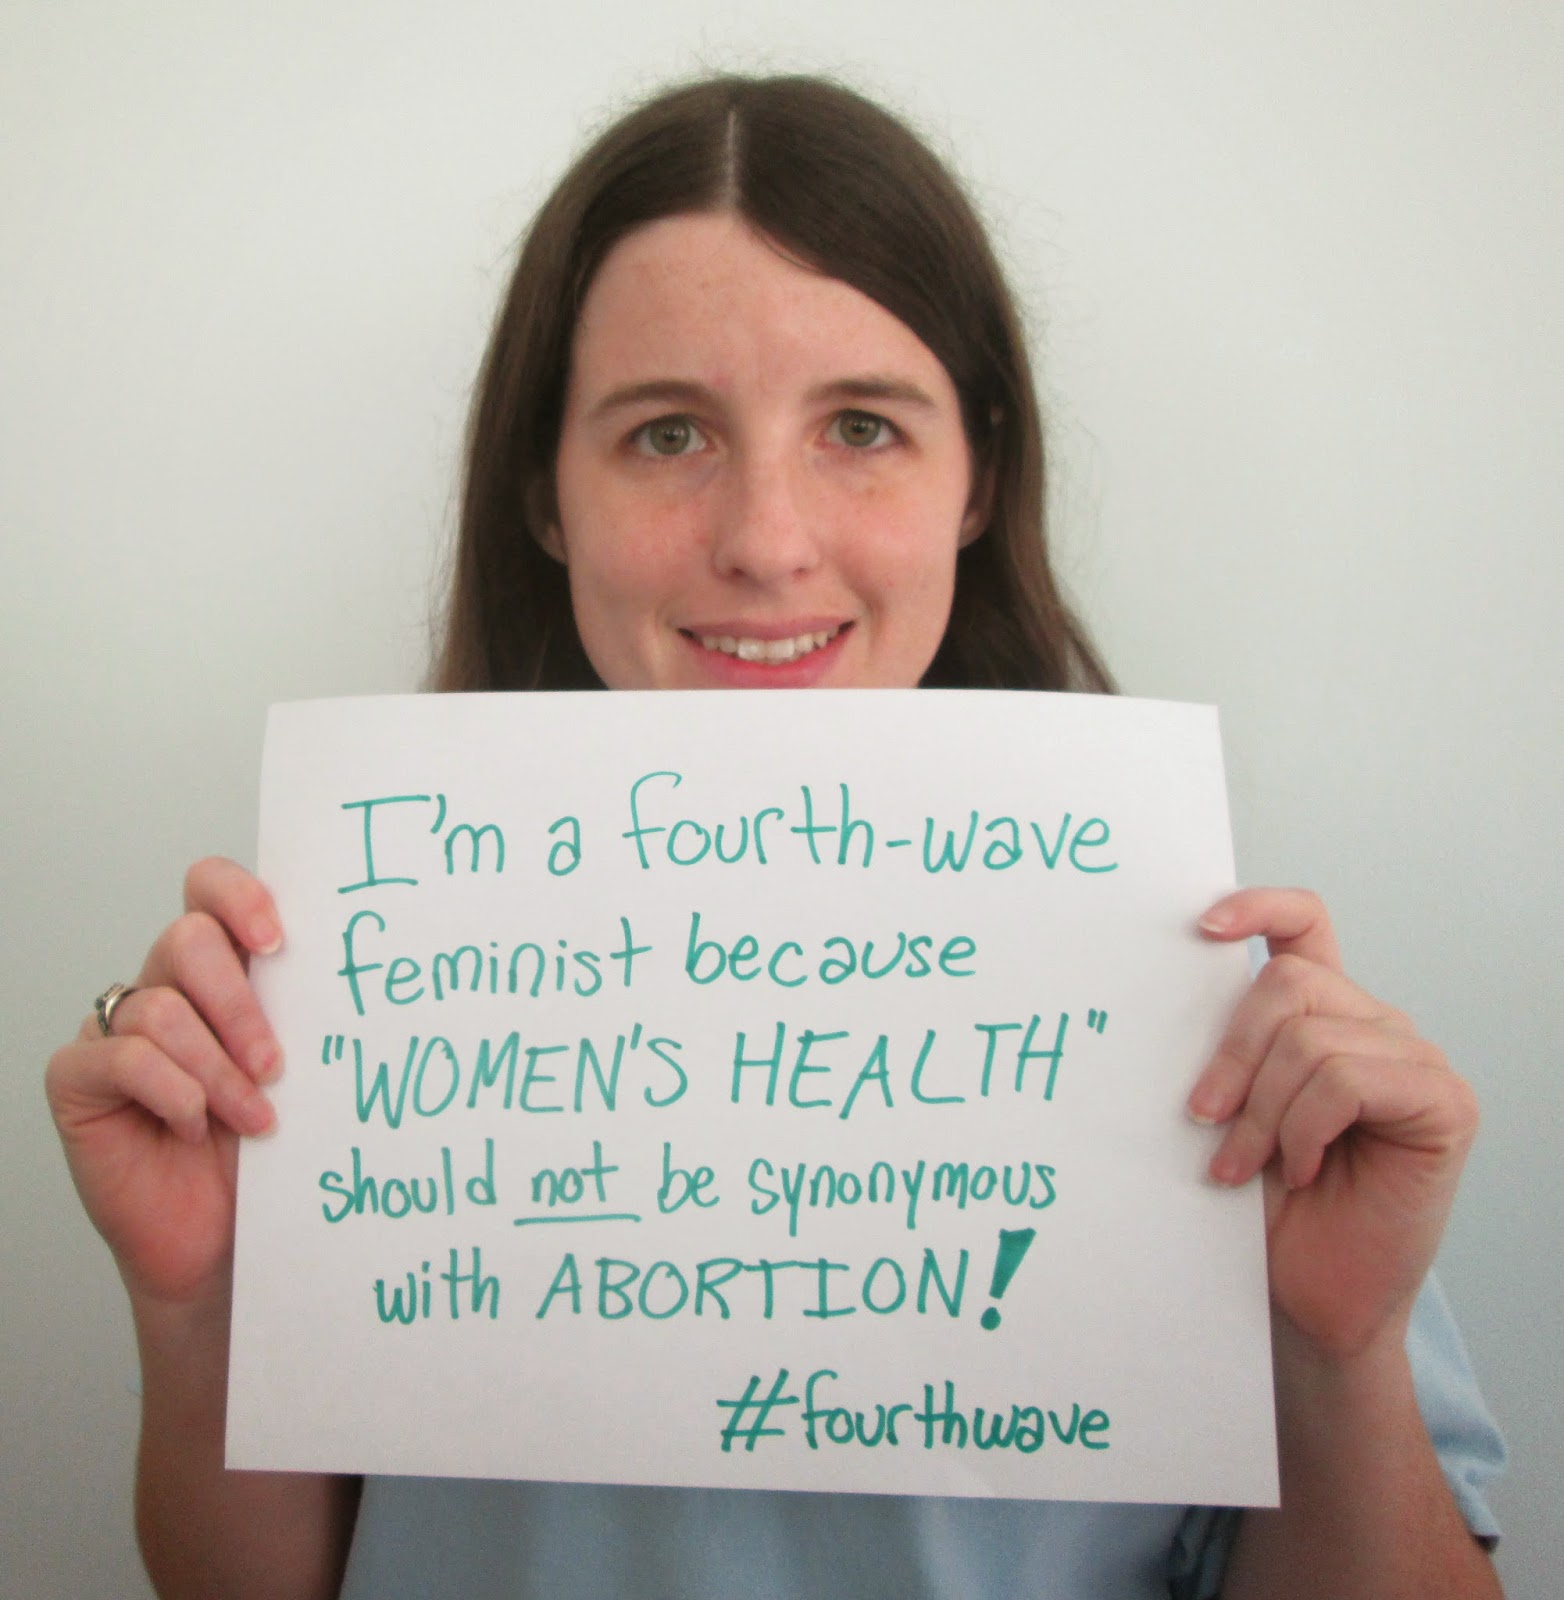 fourth wave feminism Posts about fourth wave feminism written by l wong and as others.